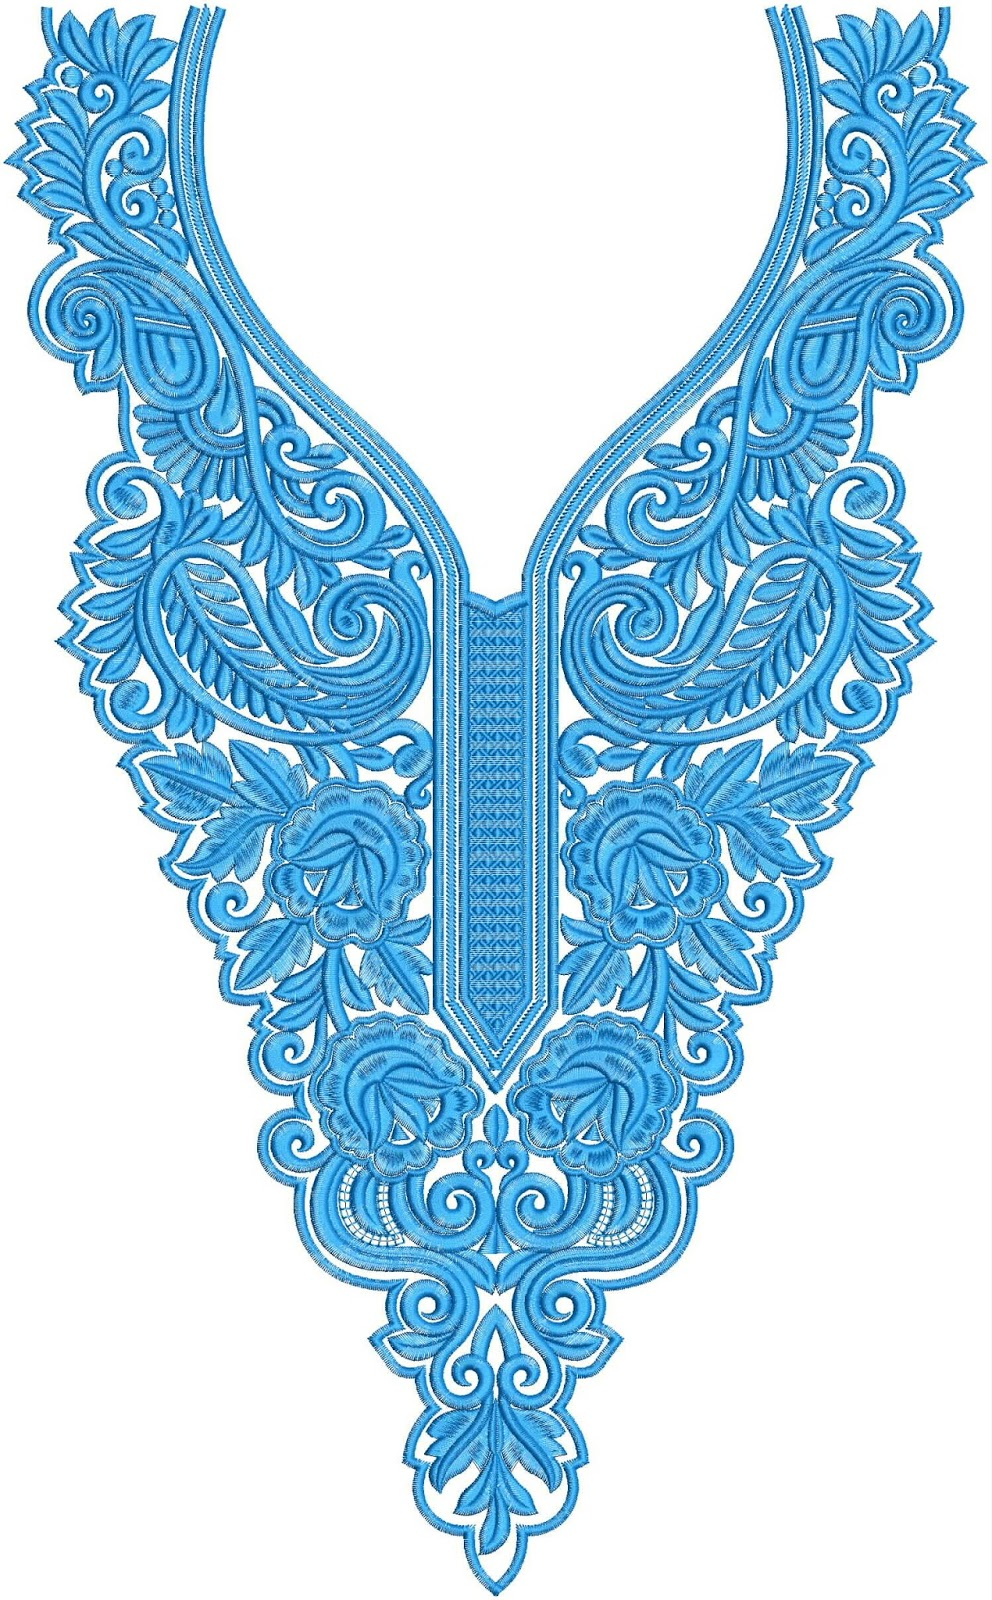 Embdesigntube mix creative neck dress embroidery designs